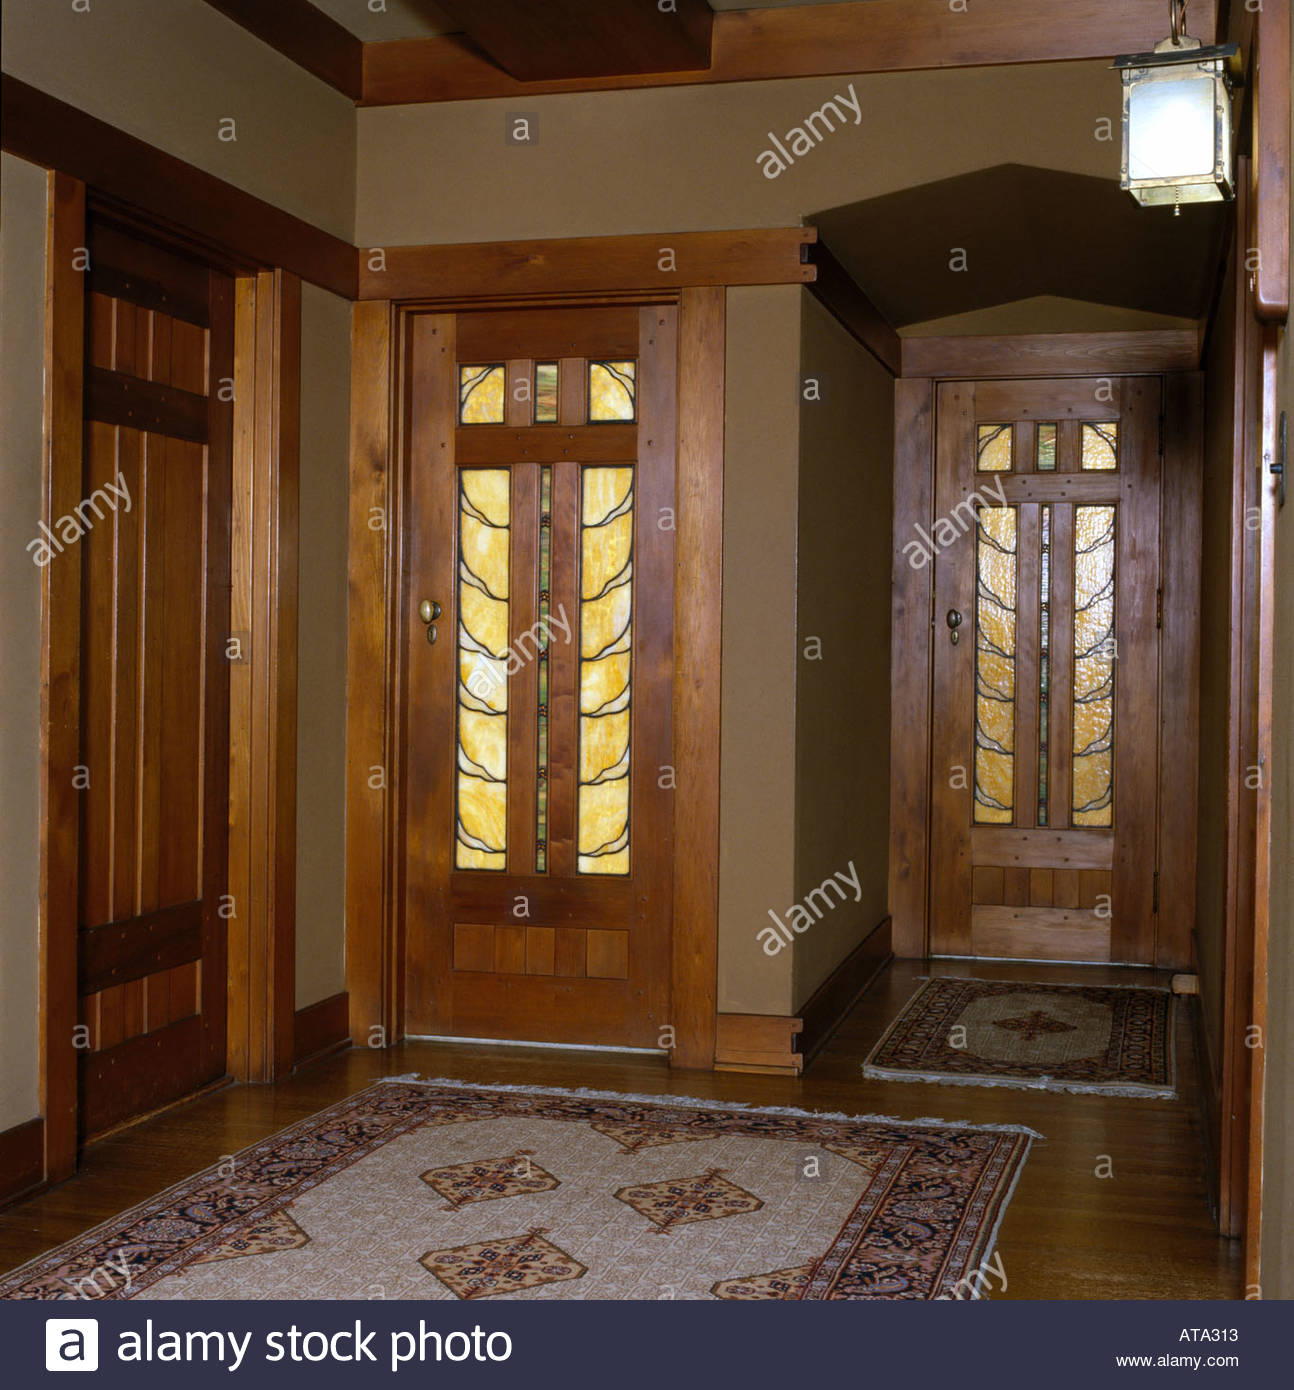 The David B. Gamble House Pasadena California. Opalescent-glass doors in upstairs landing. Architect Greene and Greene & The David B. Gamble House Pasadena California. Opalescent-glass ...